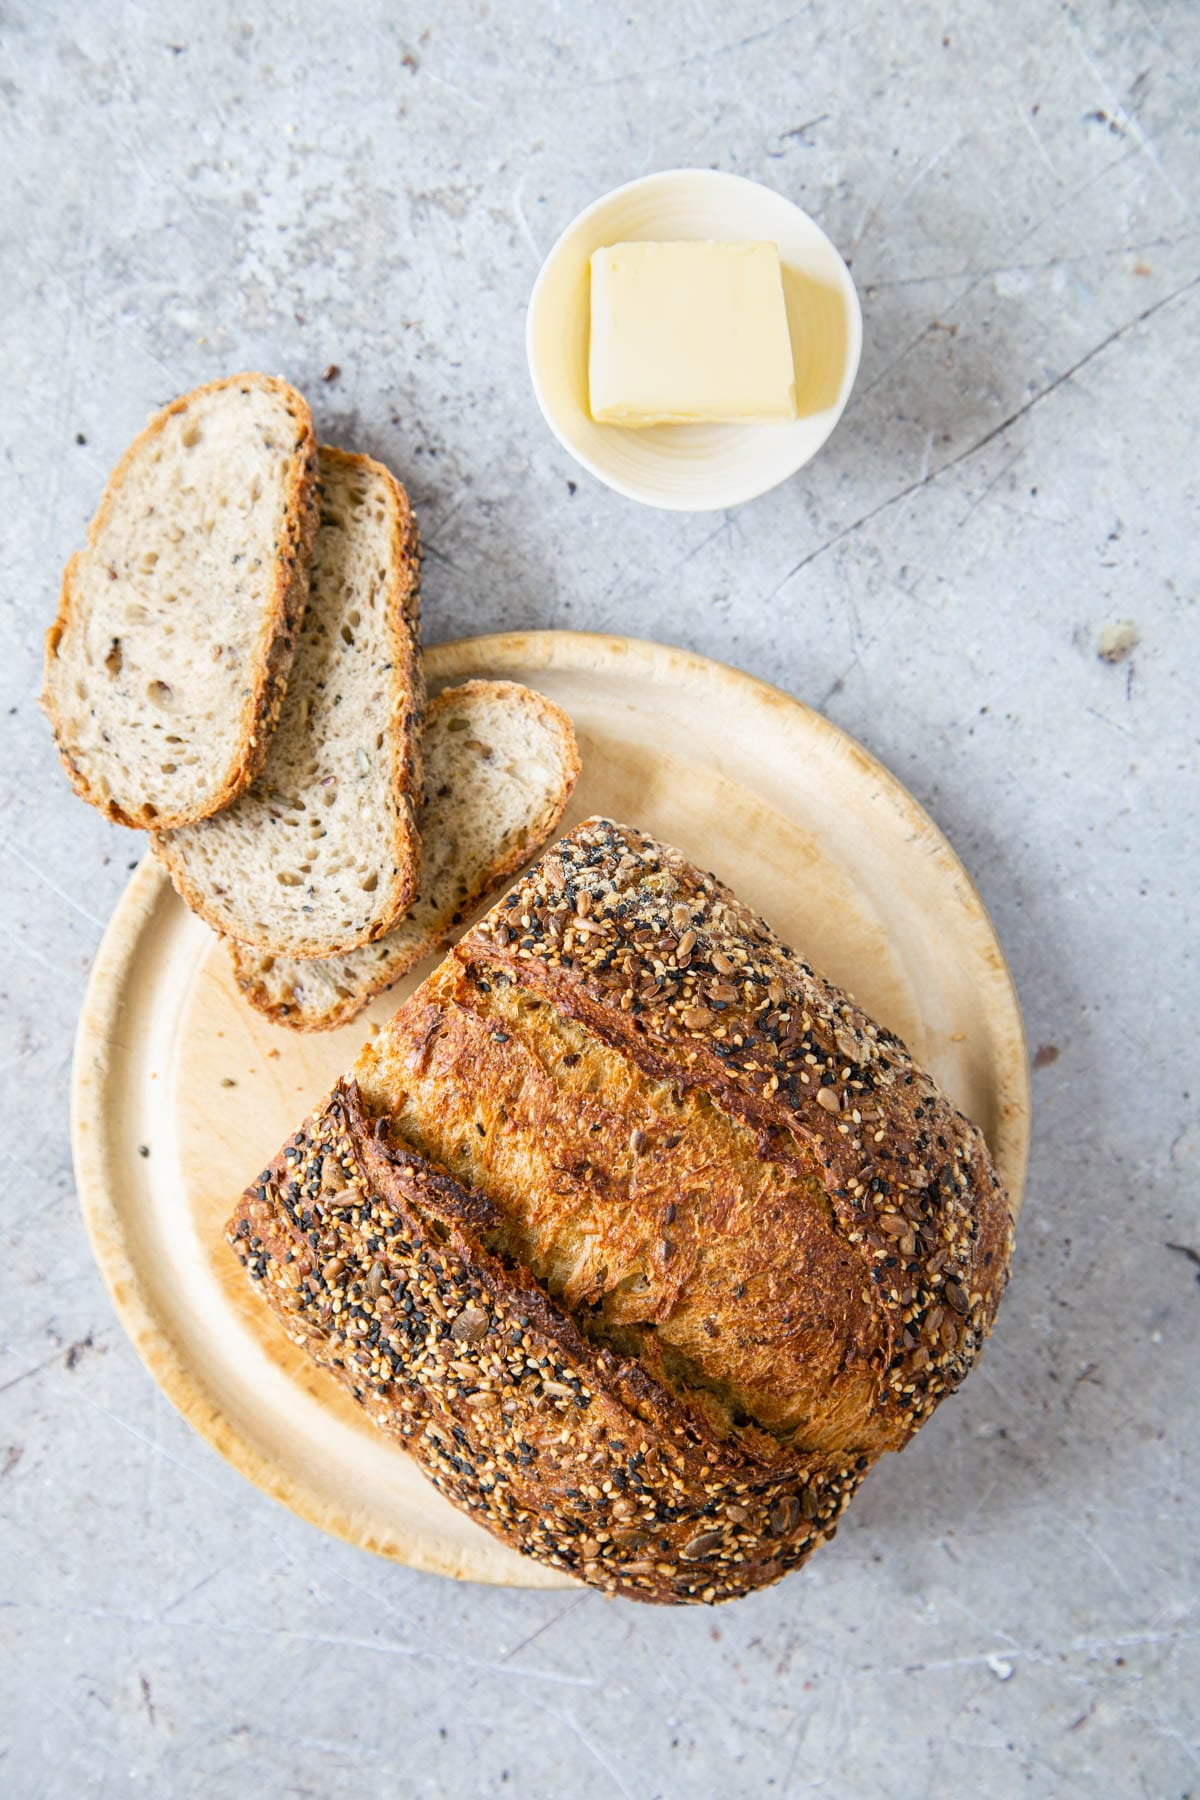 A good quality rustic loaf of bread, with some slices cut, sitting on a round breadboard. A small dish of butter sits next to the bread. Picture taken from above.